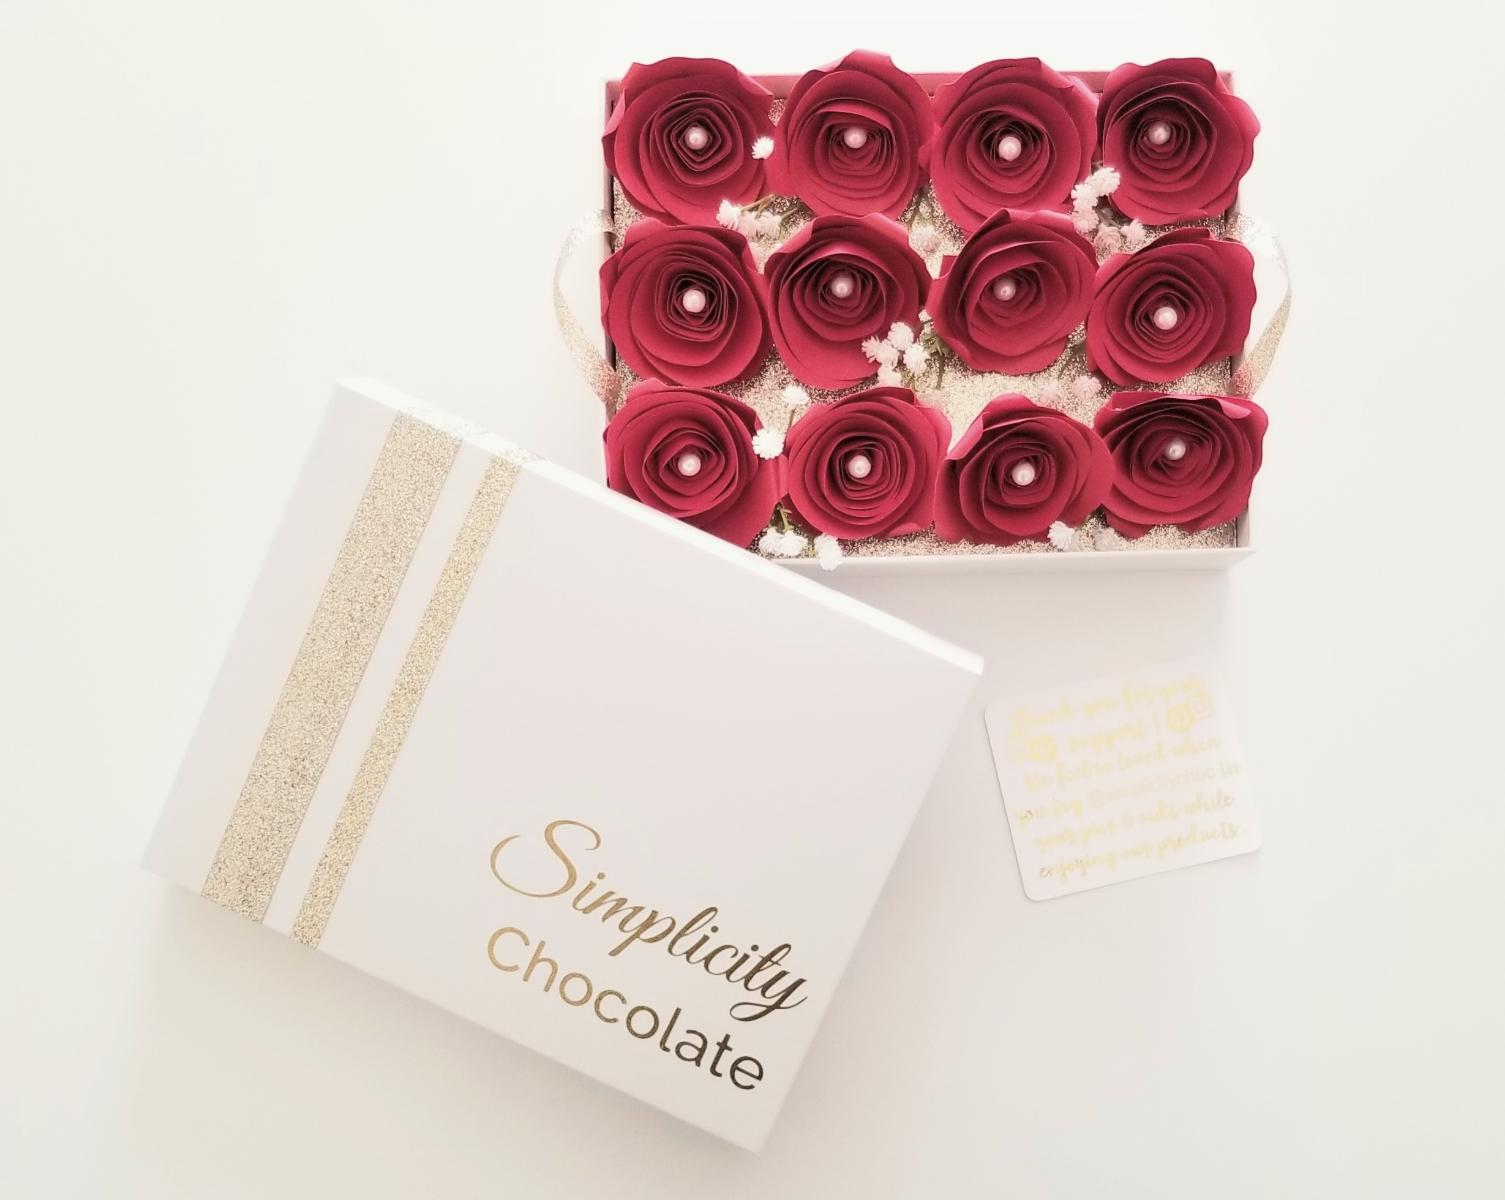 The lid of The Simplicity Chocolate Nostalgia Box with gold accents and the signature logo in gold writing is pictured next to a full view of the one dozen red, paper roses sitting atop the removable tray inside the box.